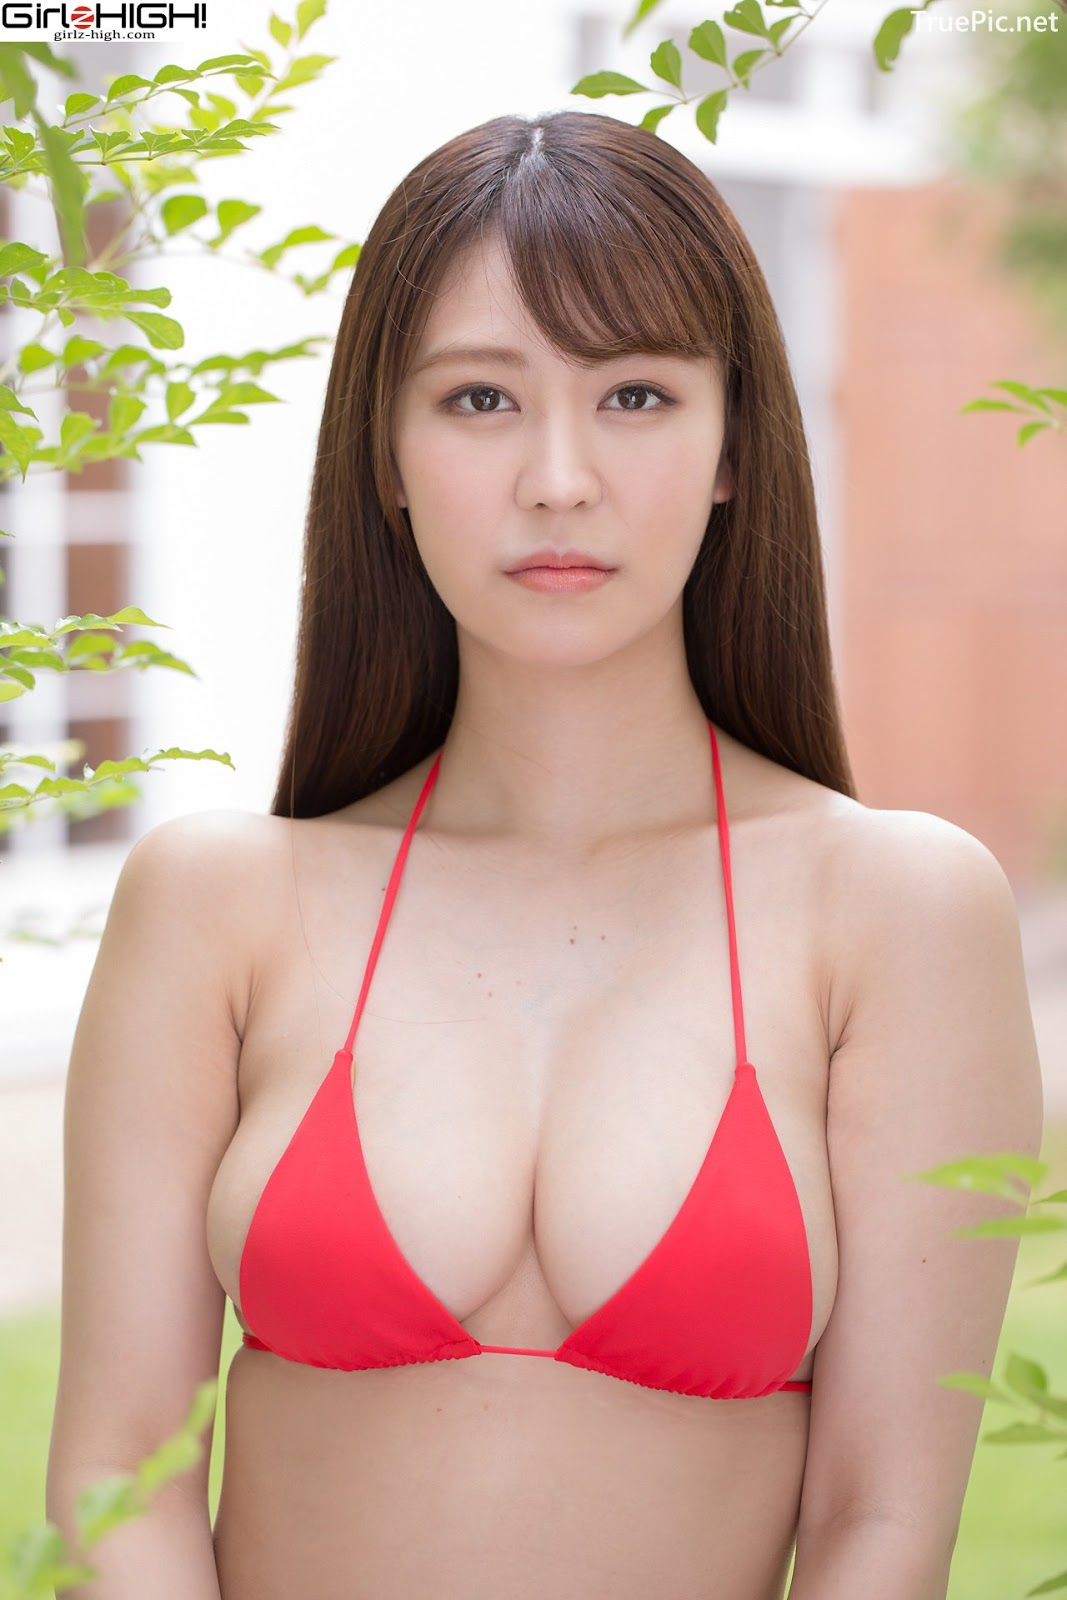 Image Japanese Gravure Idol - Kasumi Yoshinaga - Girlz High Album - TruePic.net - Picture-10